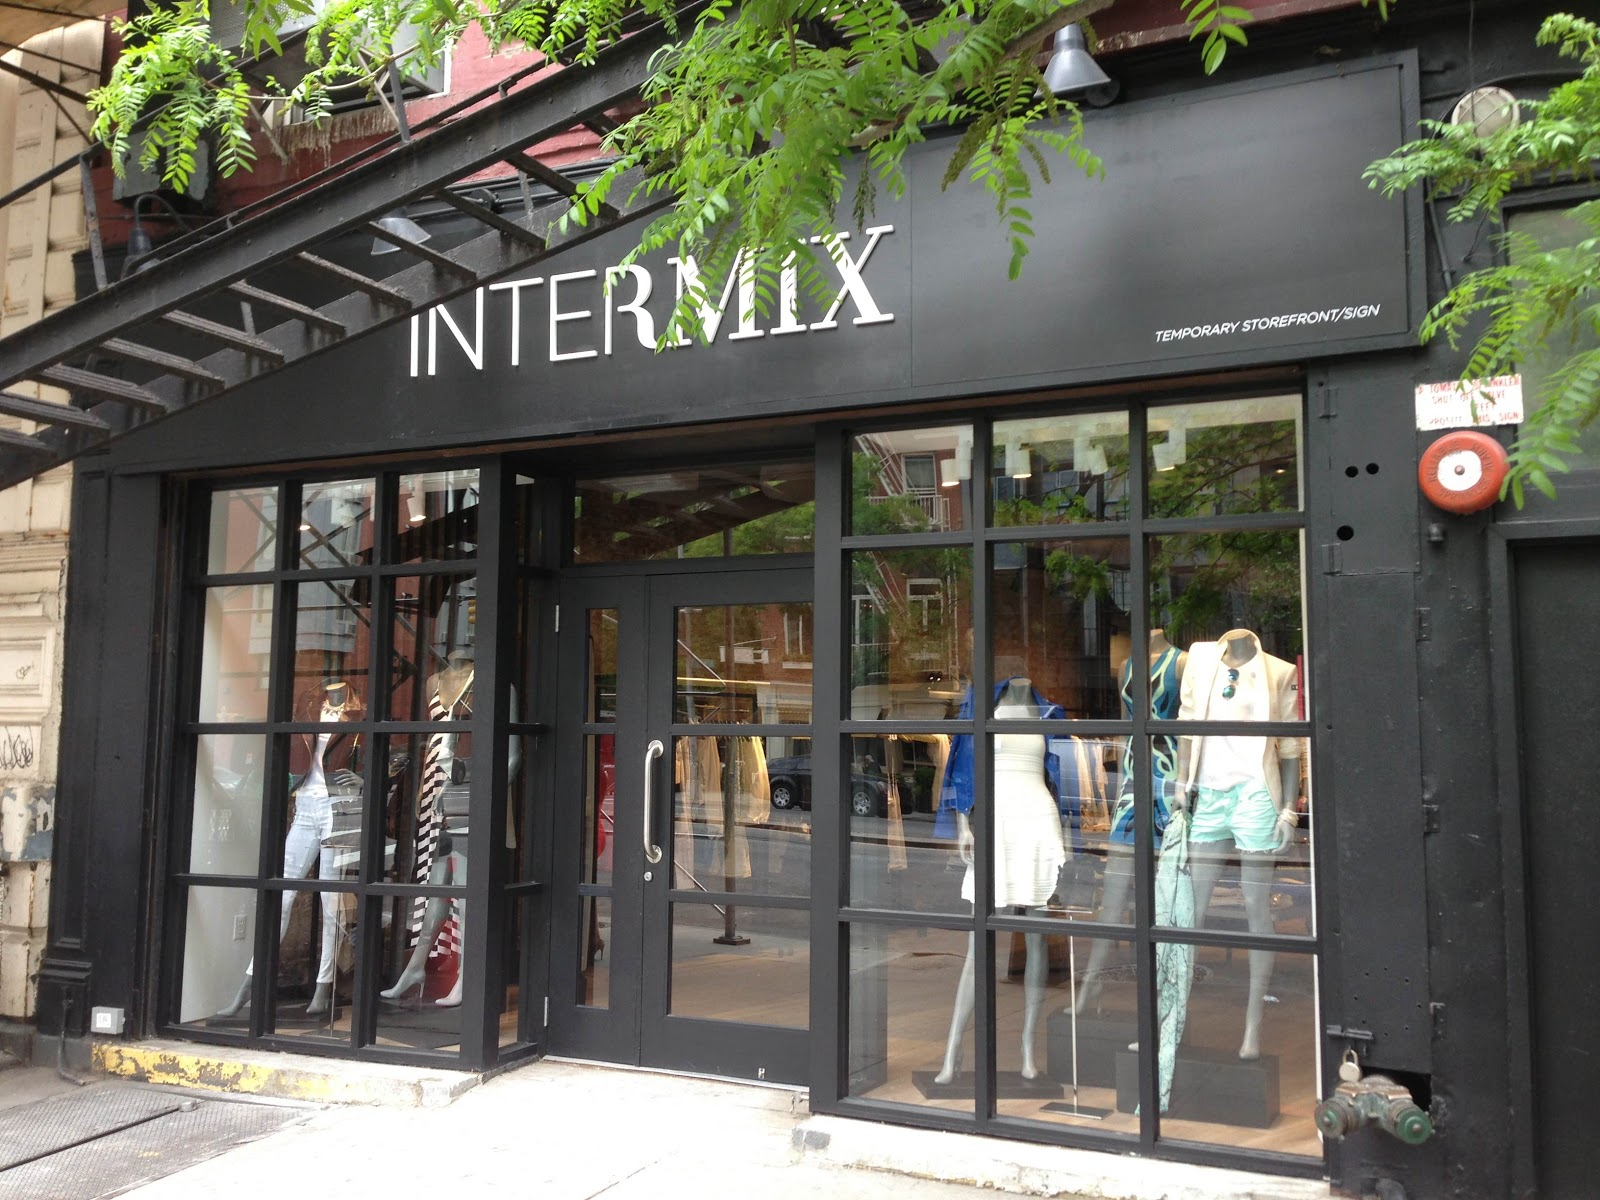 Established in , INTERMIX is a multibrand fashion retailer with a compelling and unique point of view. Its twenty-eight boutiques across the United States and Canada and e-commerce site offer a curated mix of on-trend, irresistible pieces, celebrating each customer's personal sense of style with an intimate, individualized approach.